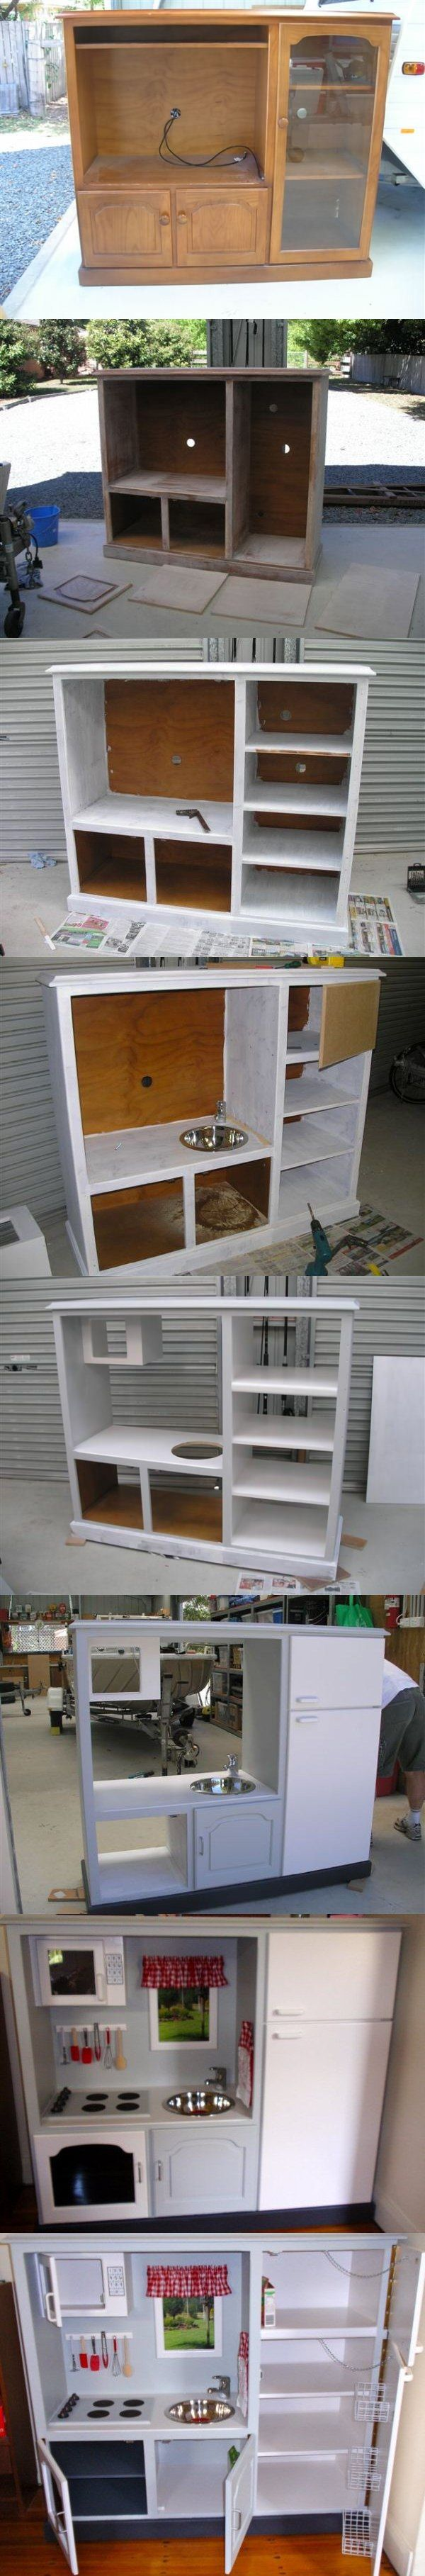 I can get an entertainment center like this at auction almost any week. I may try this.